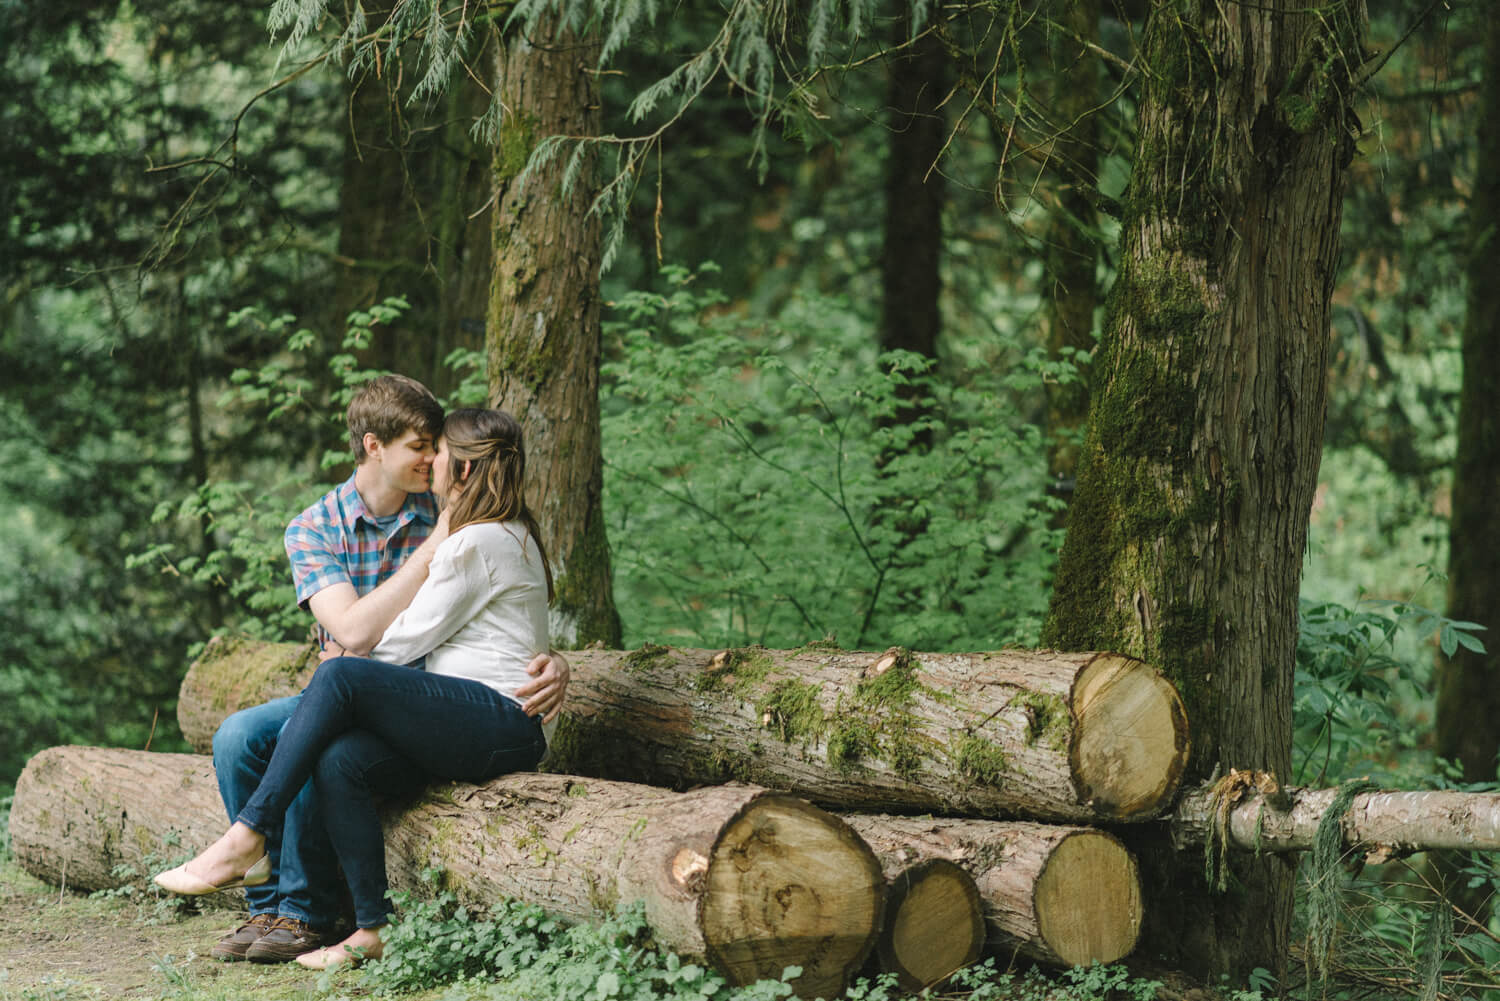 portland-engagement-photography-washington-park-hoyt-arboretum-shelley-marie-photo-339.jpg